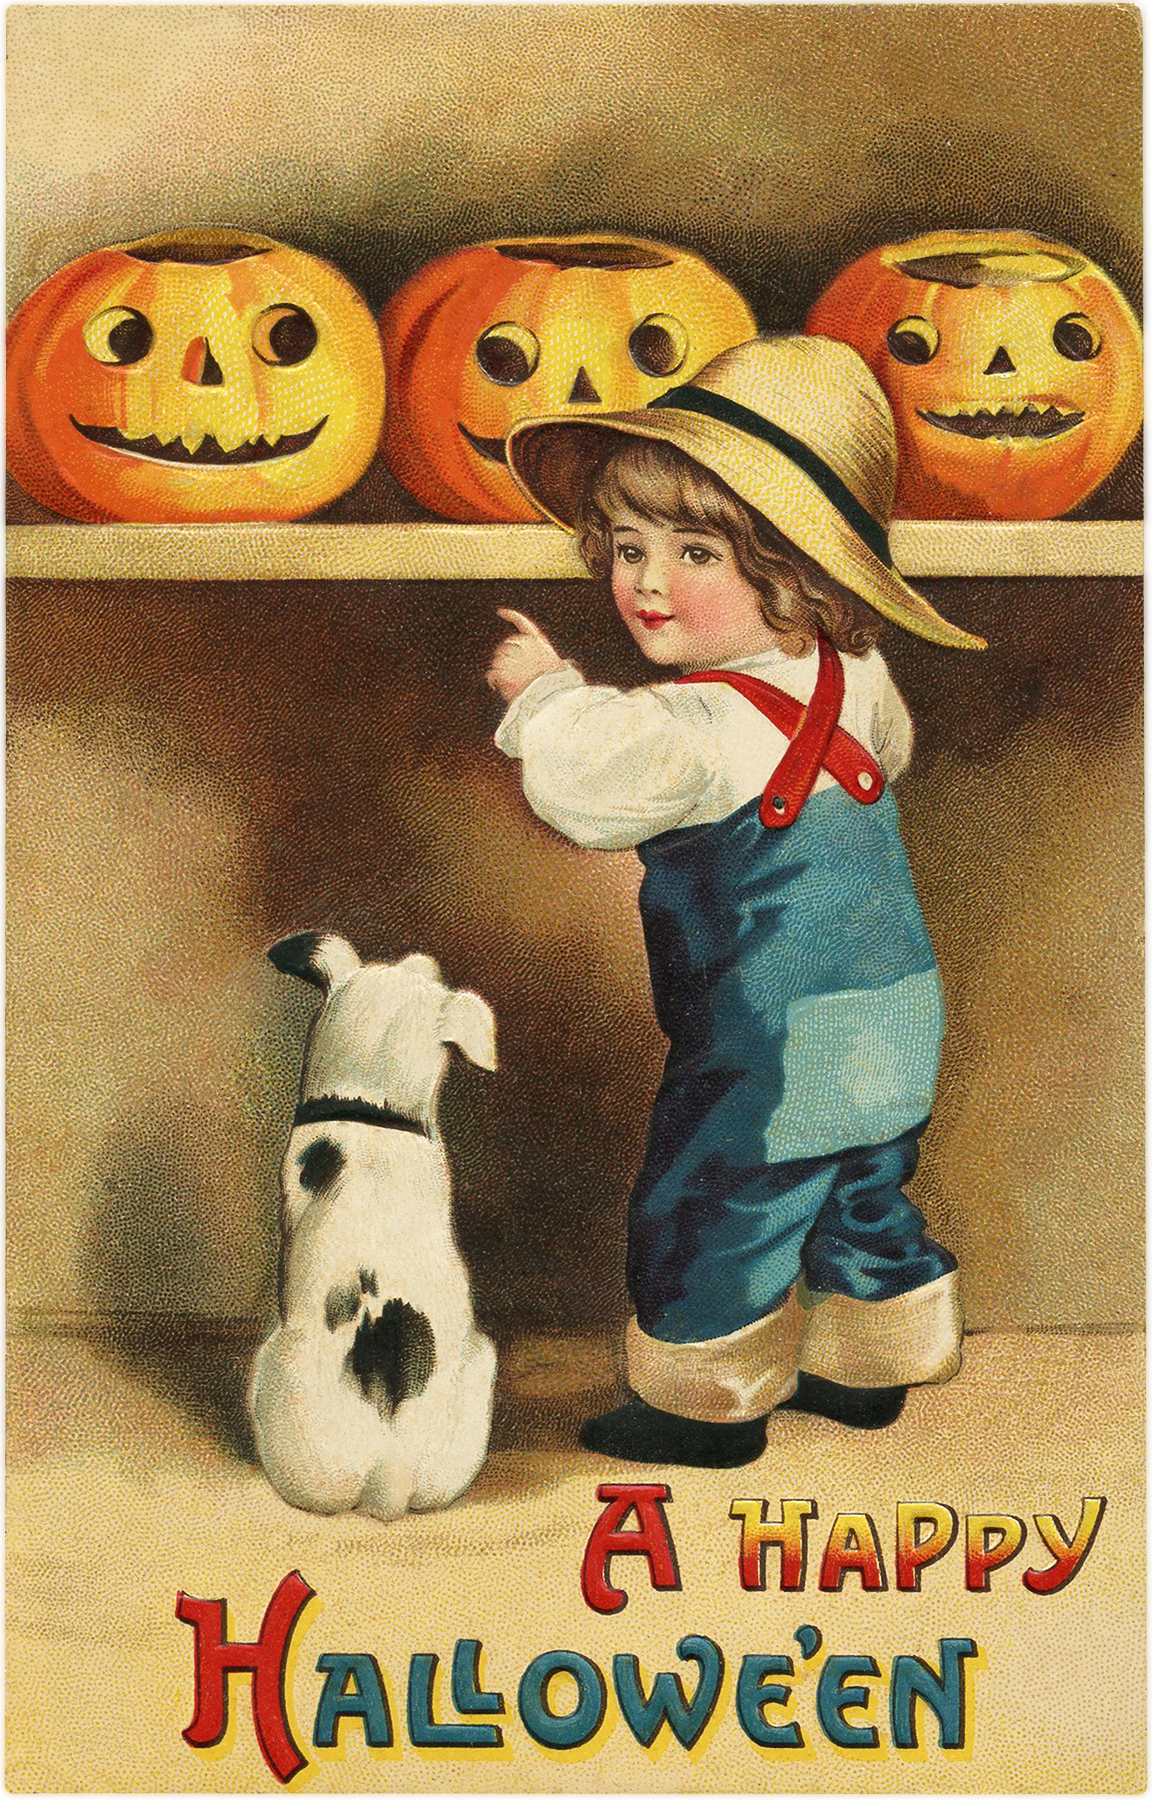 Darling Vintage Halloween Boy Image